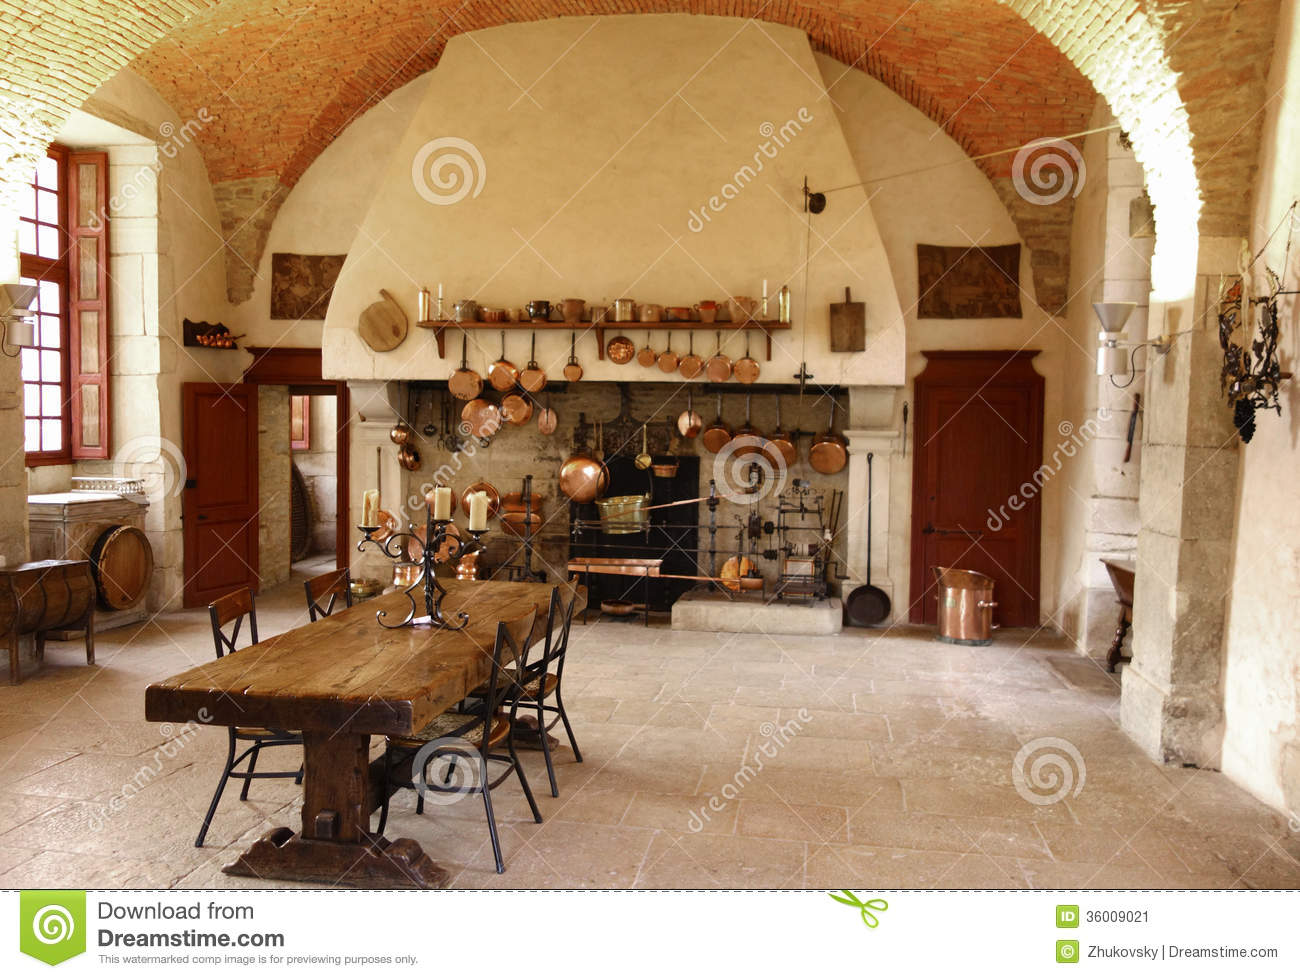 The Ancient Kitchen at Chateau de Pommard winery.